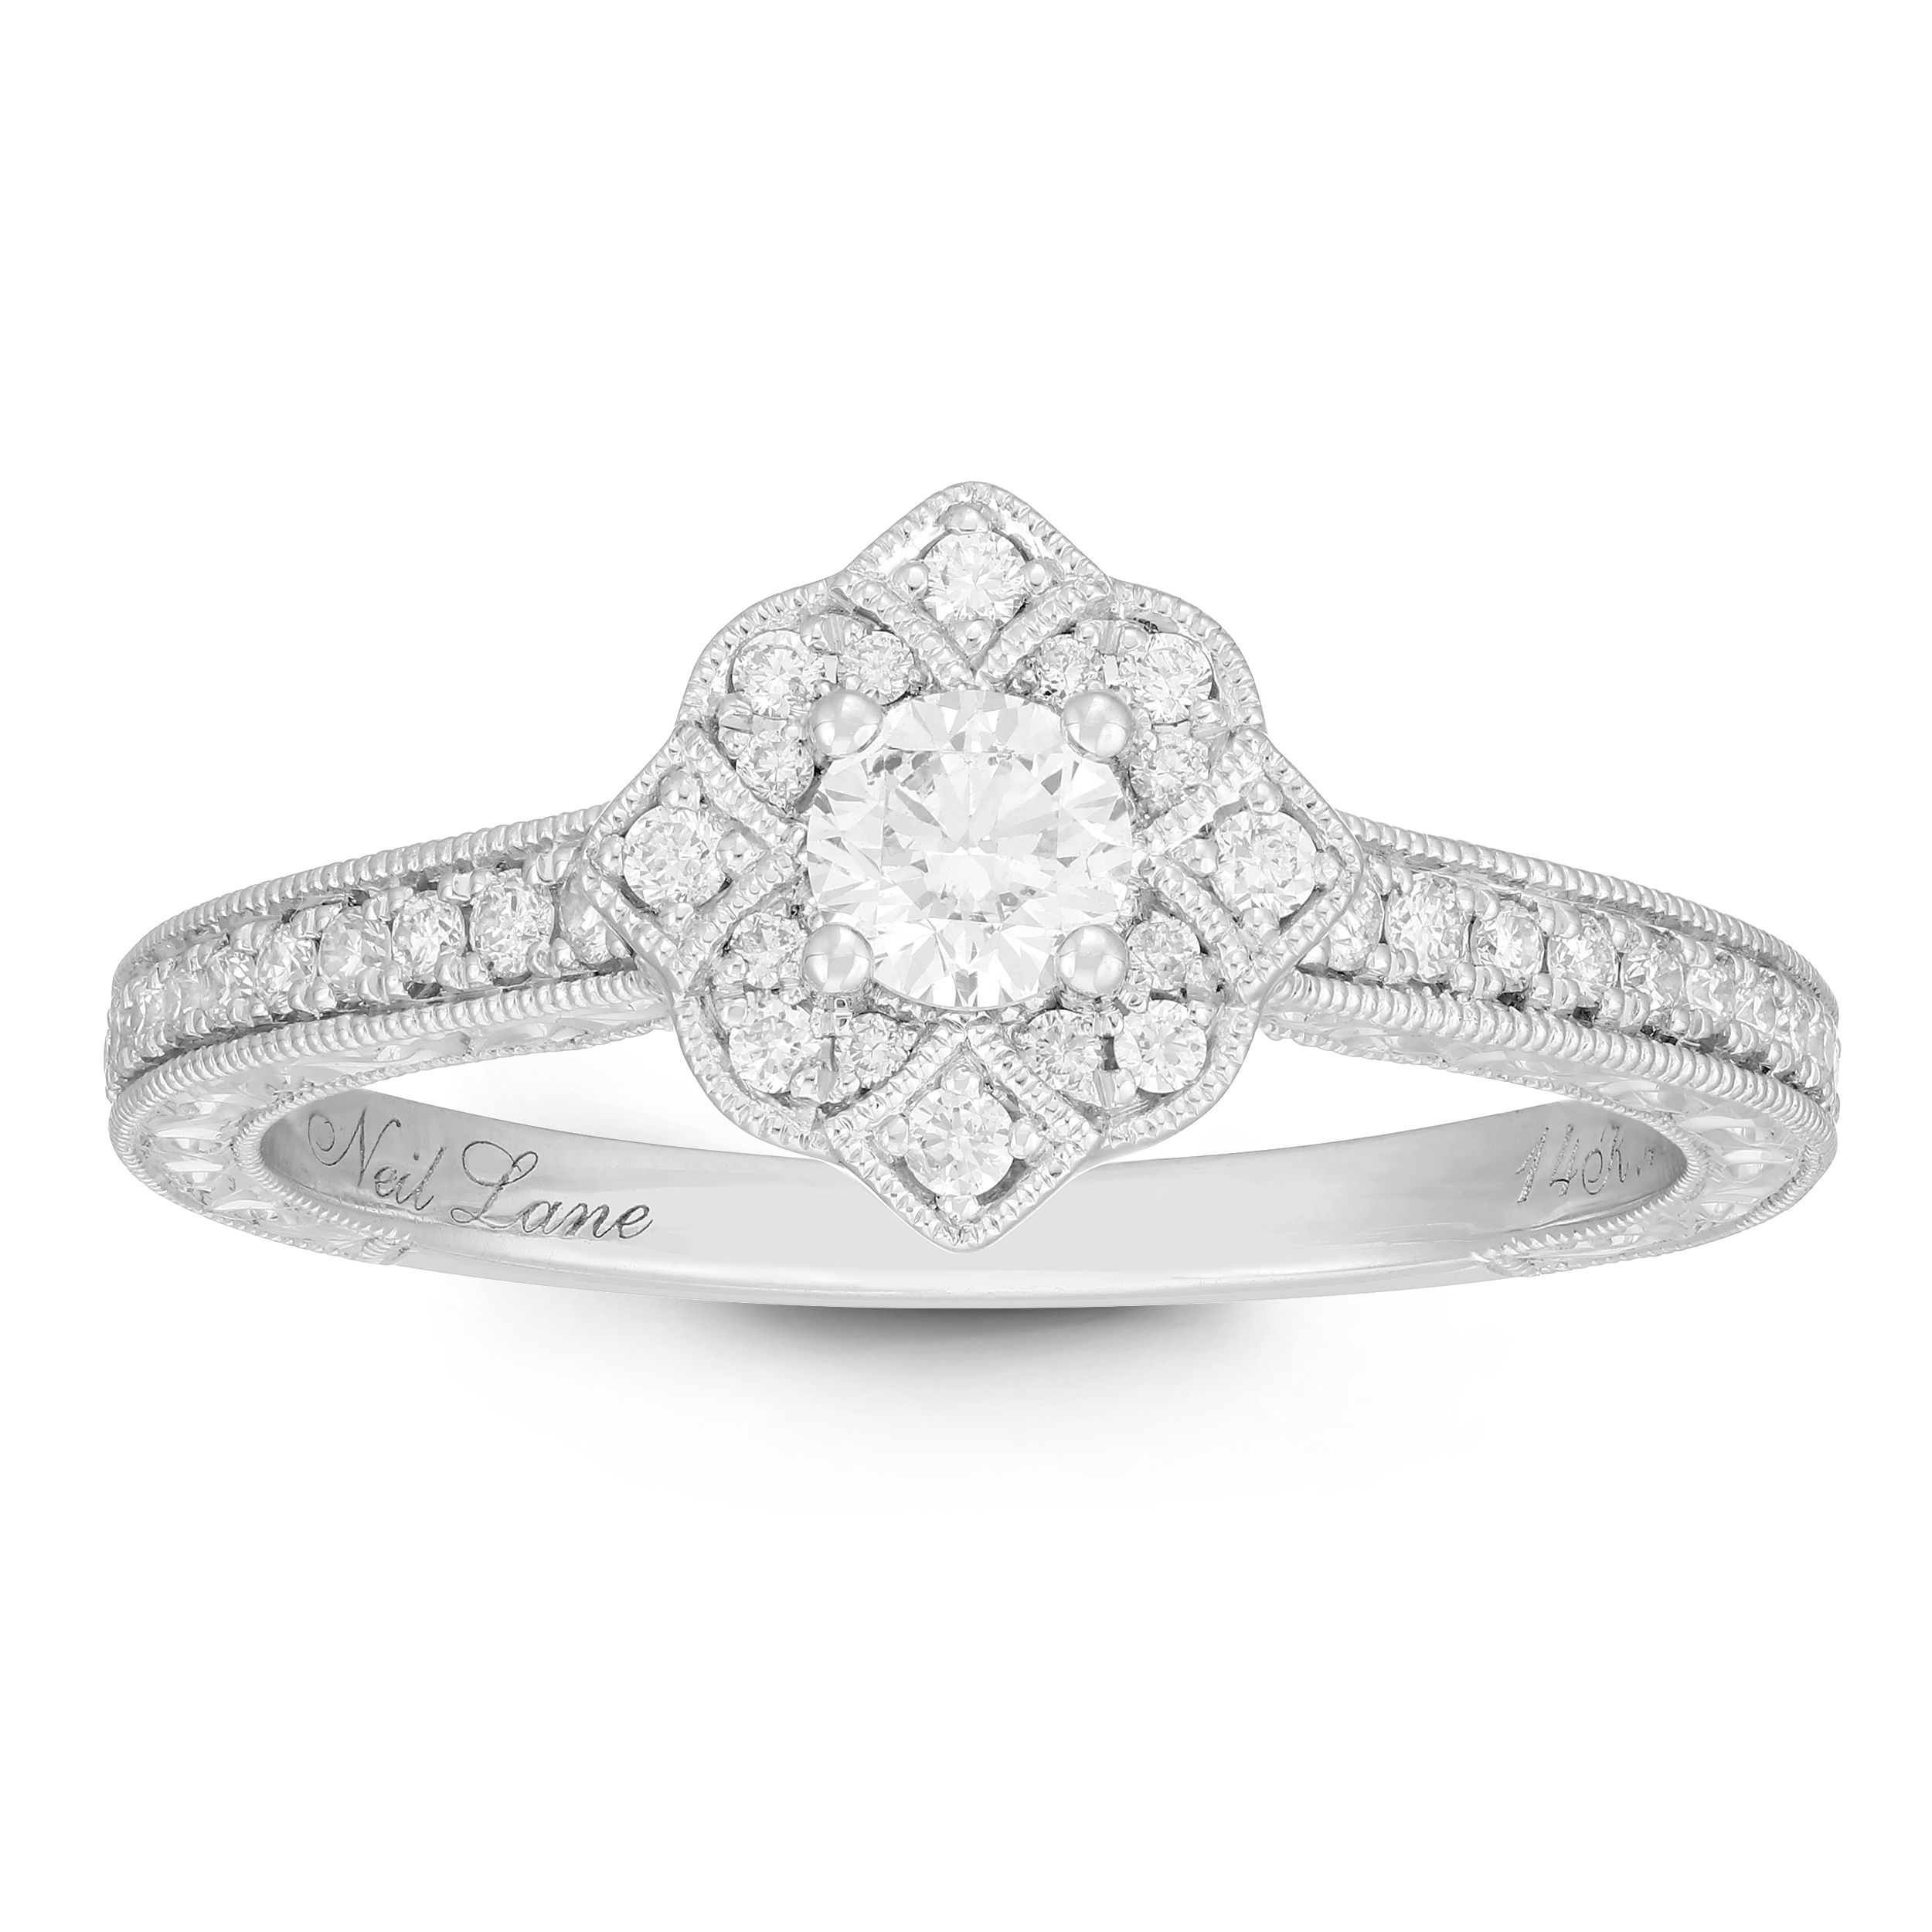 a692f66b7 Crafted in 14ct white gold this Neil Lane ring features a timeless Tudor  rose design, with a round-cut diamond center-piece. #diamonds #engagement # ring